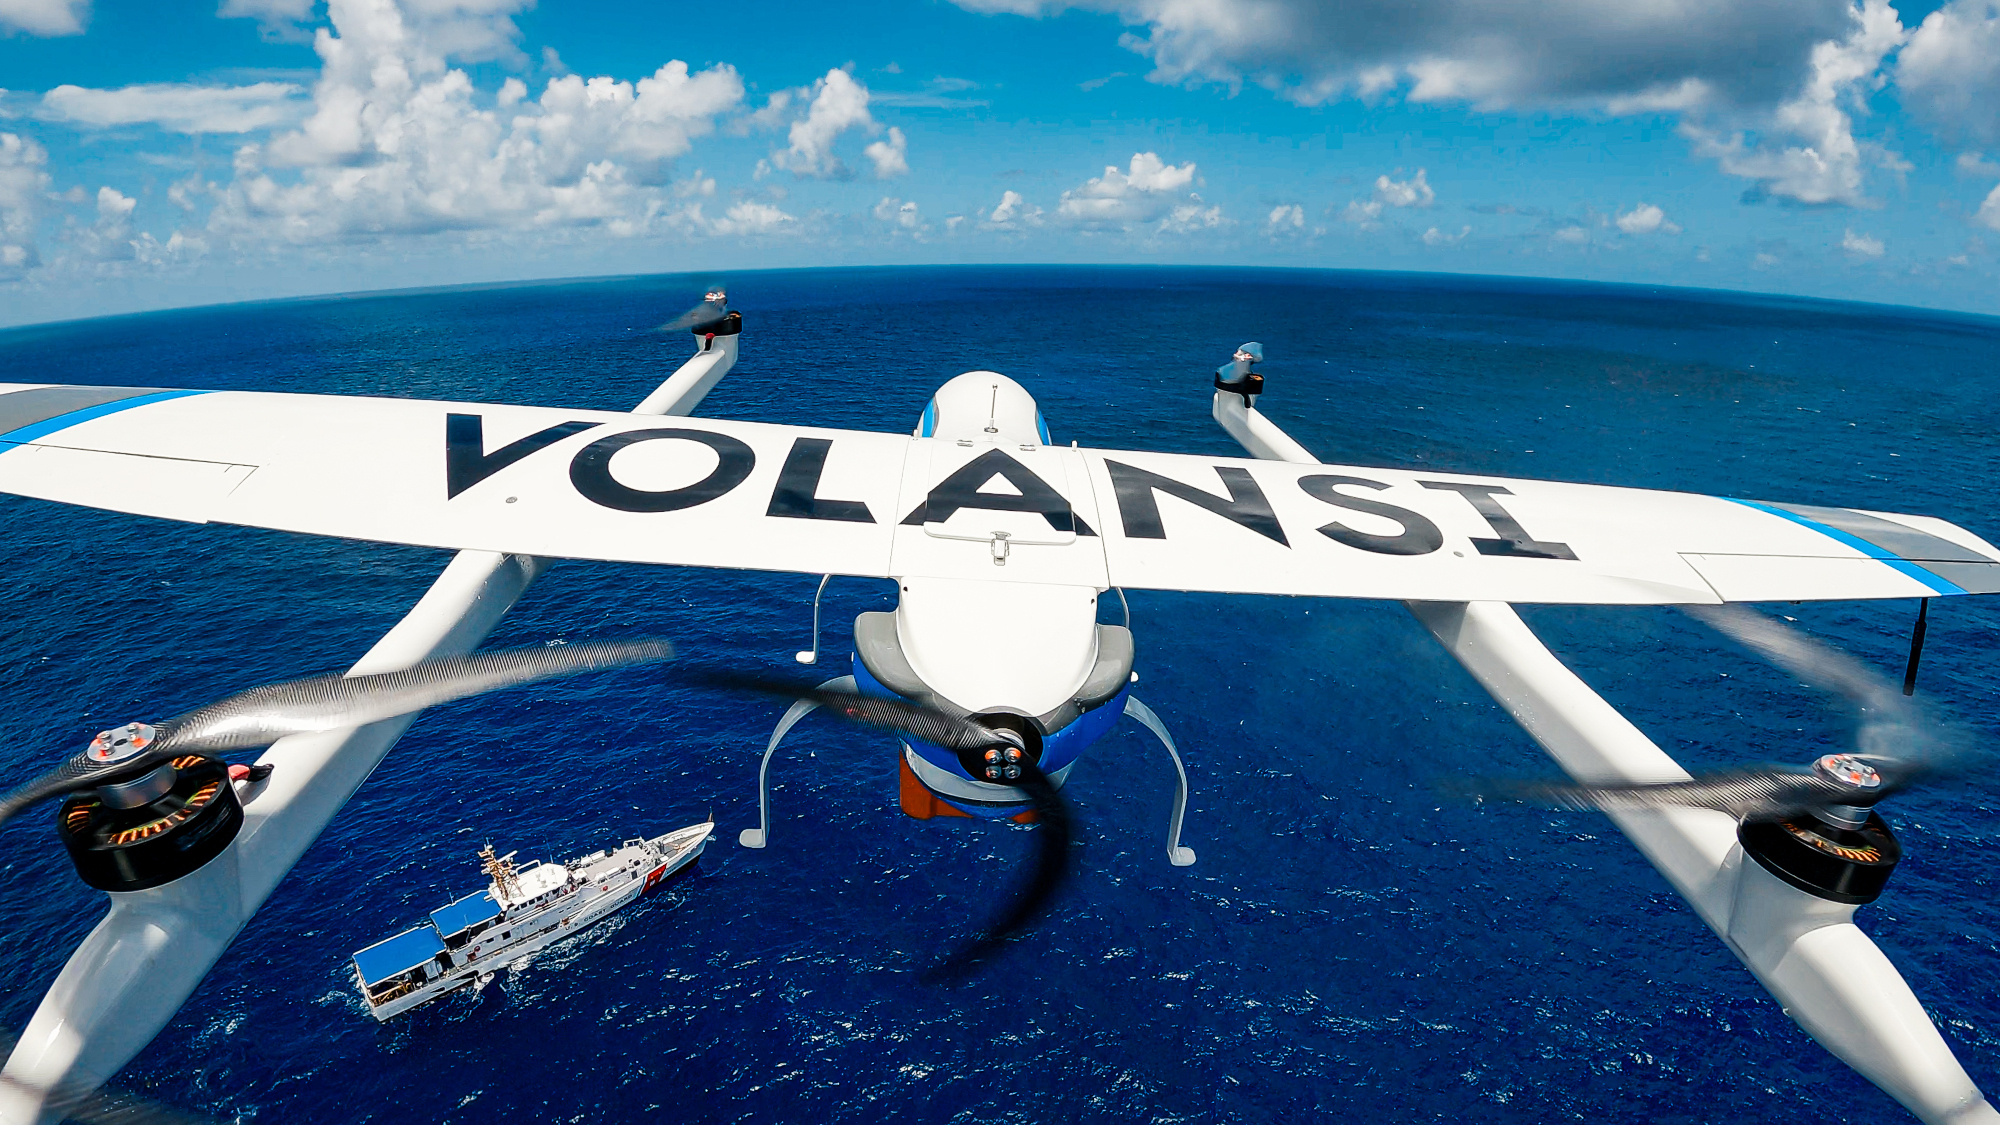 Drone Disruptors: Volansi's autonomous drone ecosystem can make deliveries just about anywhere with the click of a button